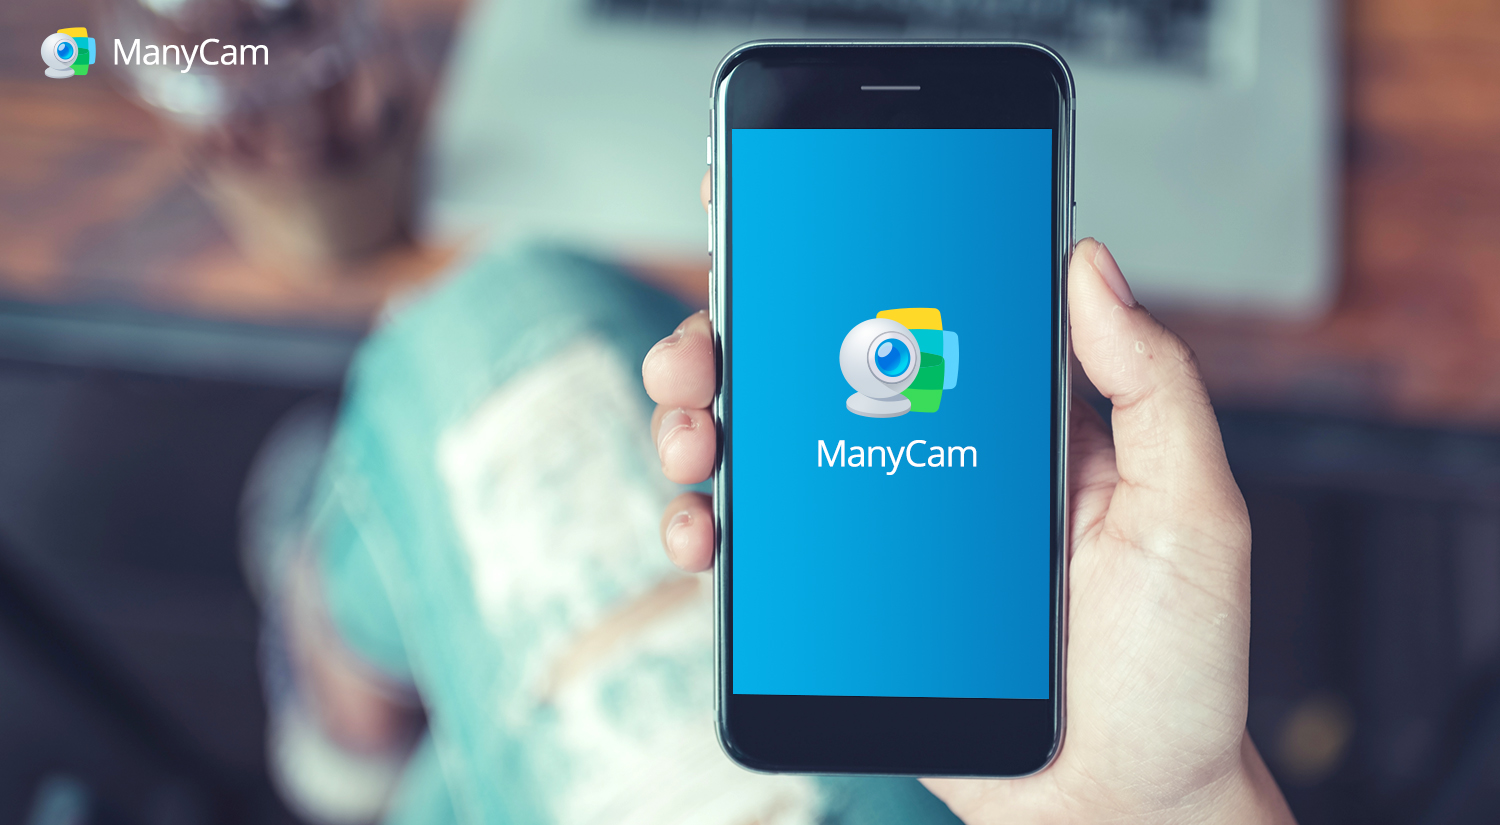 Turn your smartphone into a webcam with the ManyCam App